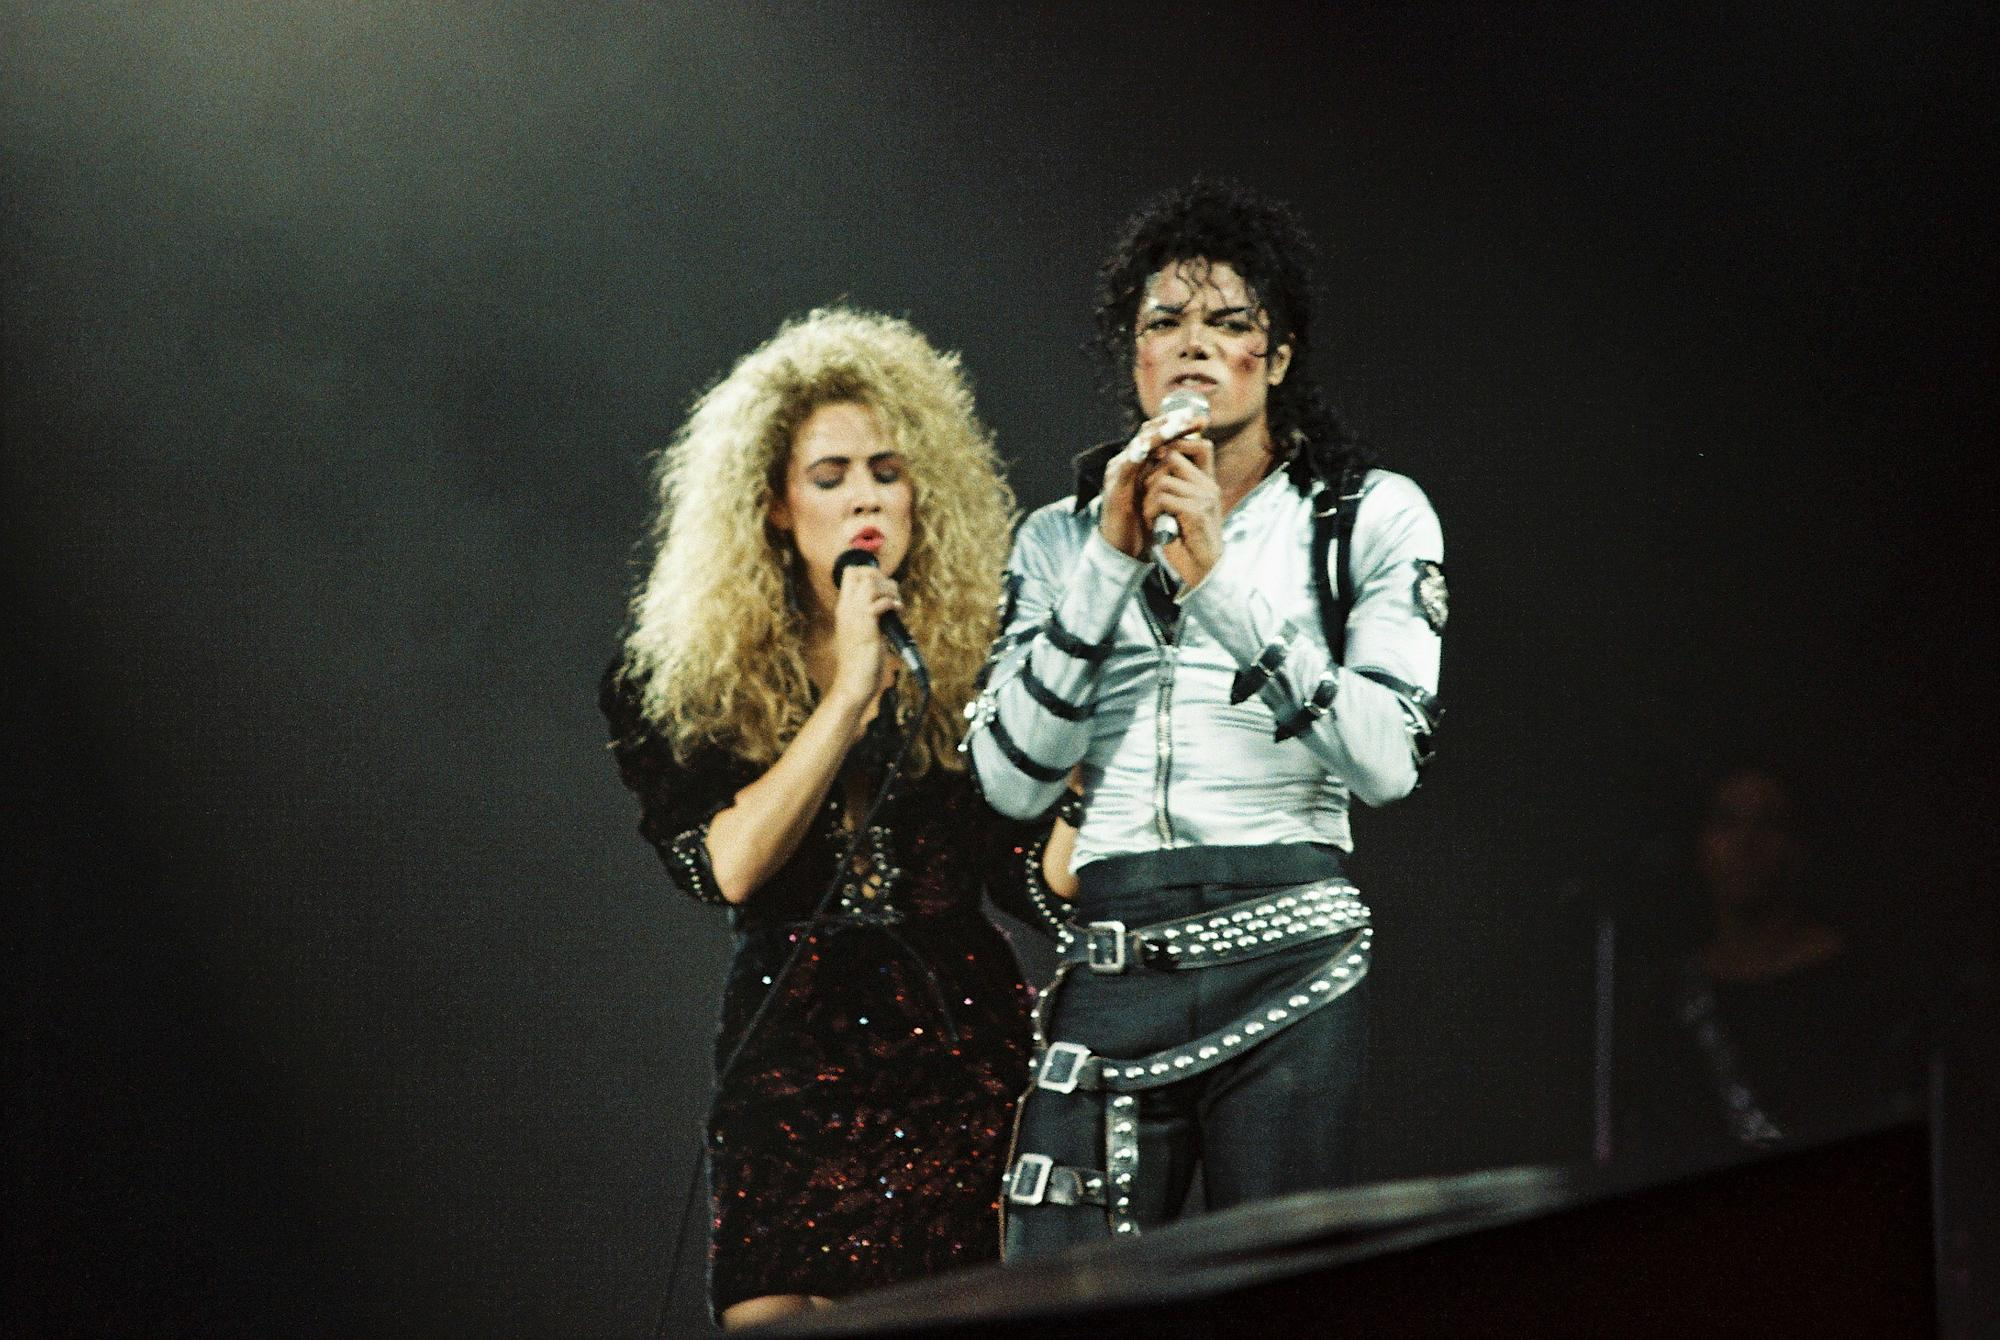 Sheryl Crow speaks out on being sexually harassed while touring with Michael Jackson